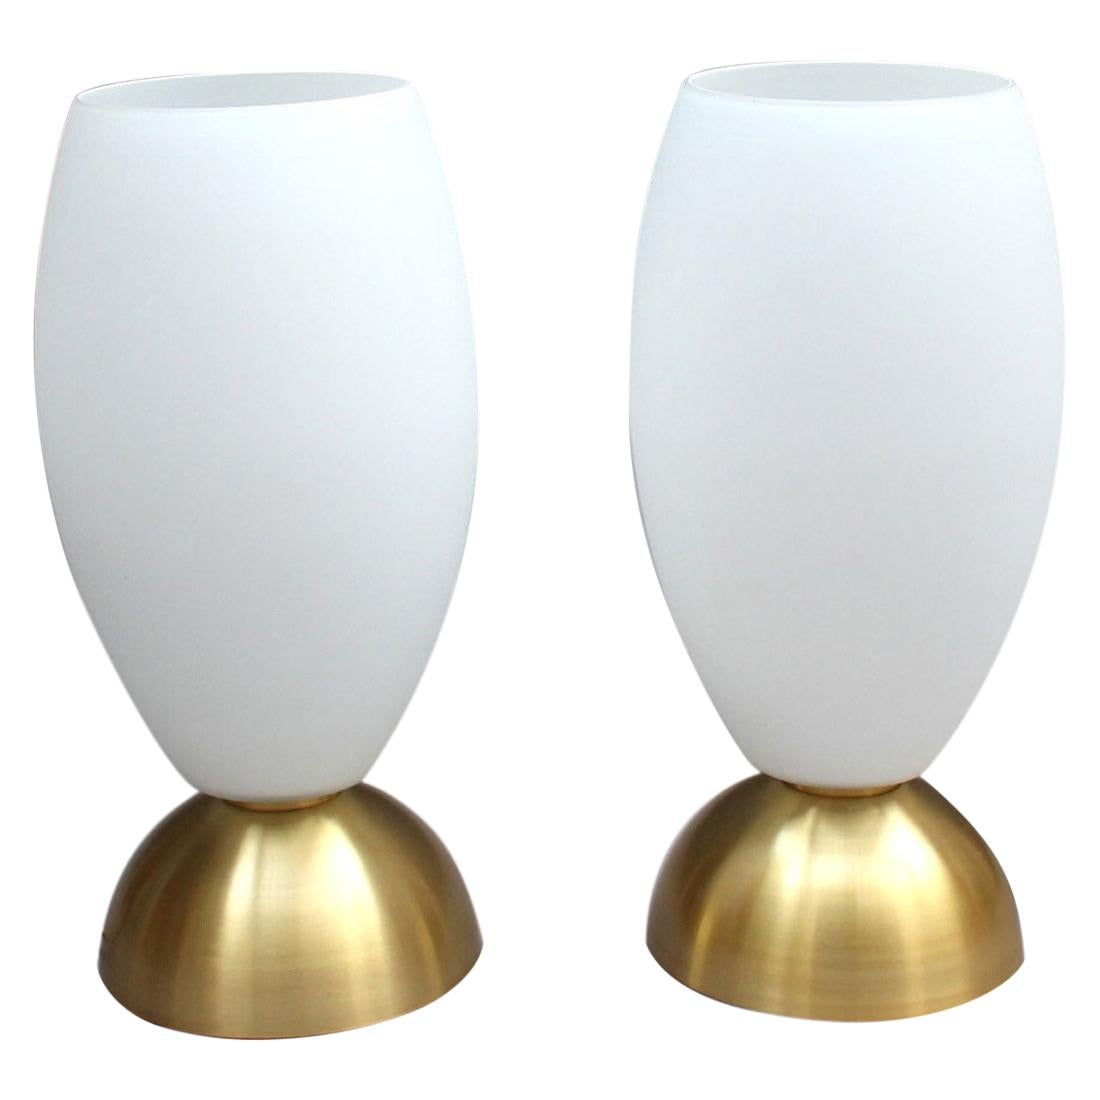 Pair of Fine French Art Deco Brass and Glass Table Lamps by Perzel